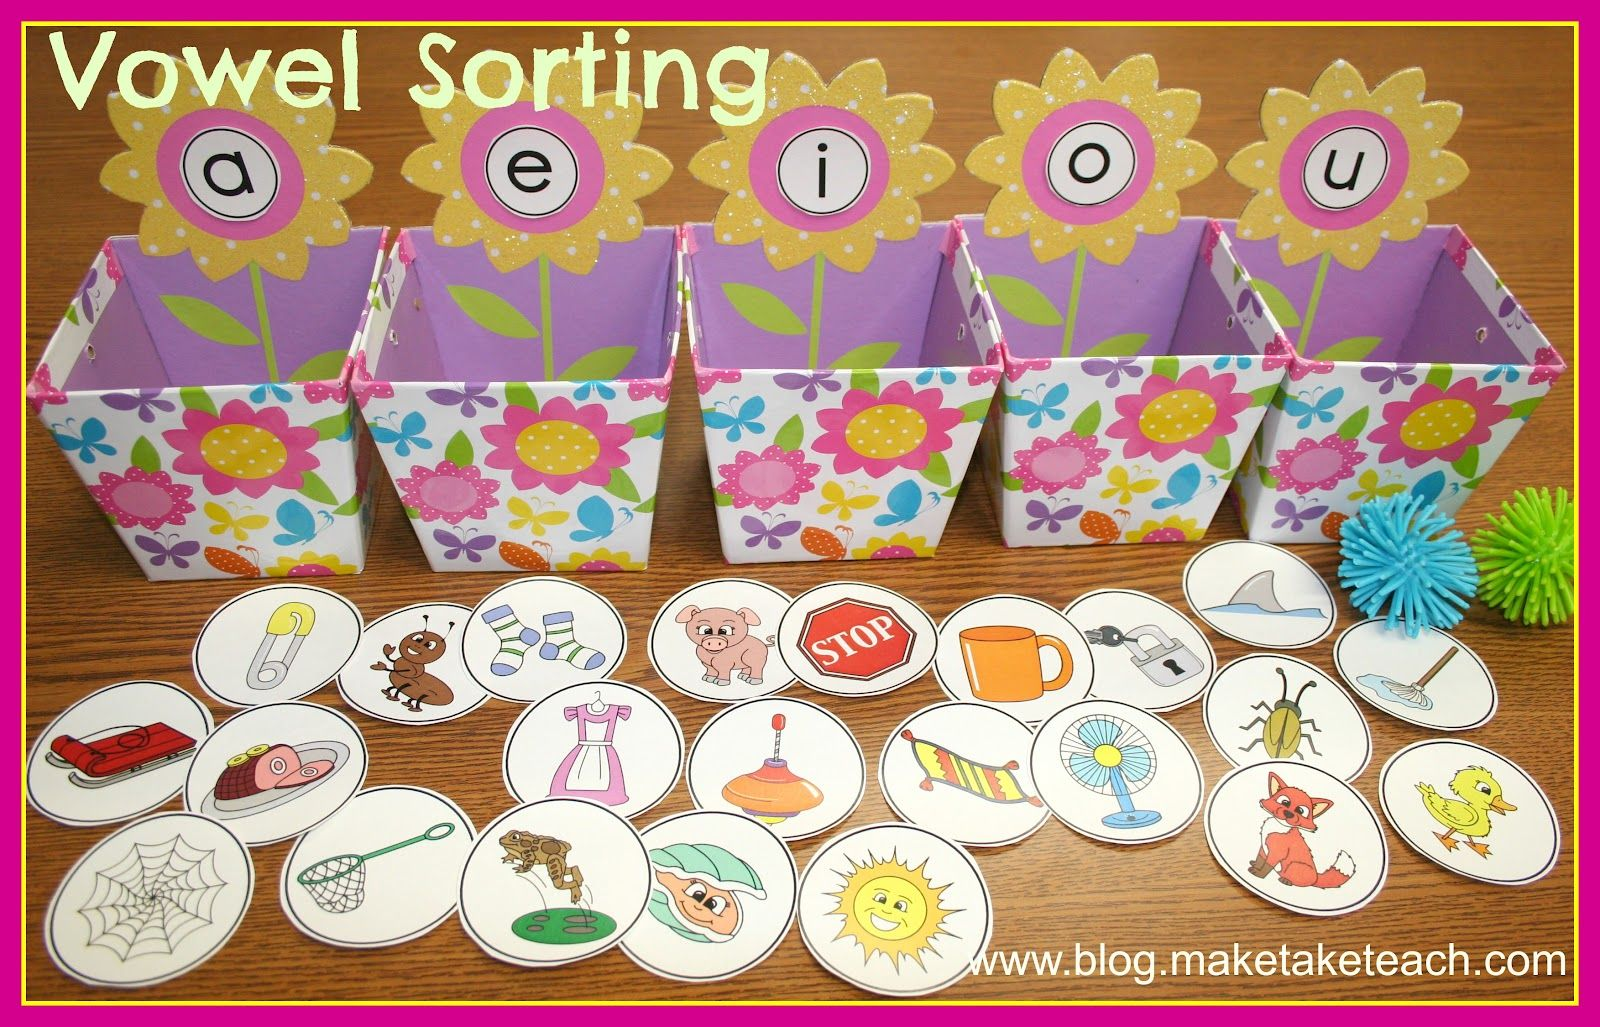 Short Vowel Pictures For Sorting